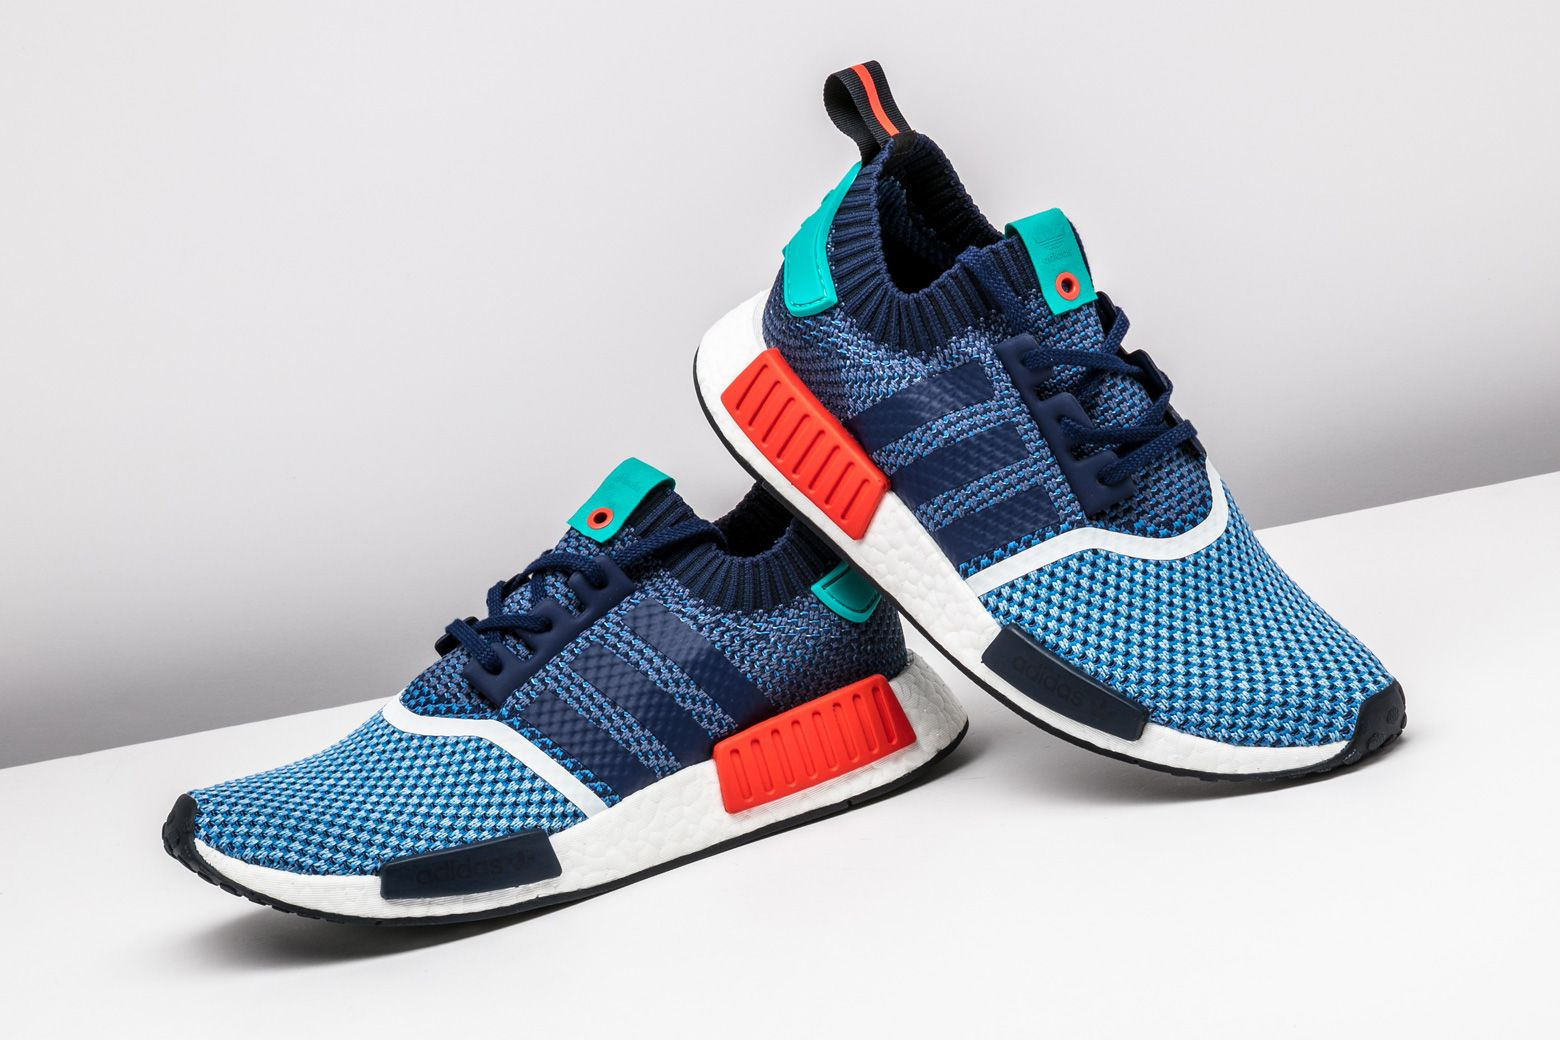 Adidas NMD R1 Primeknit 'Tri color' #follownews